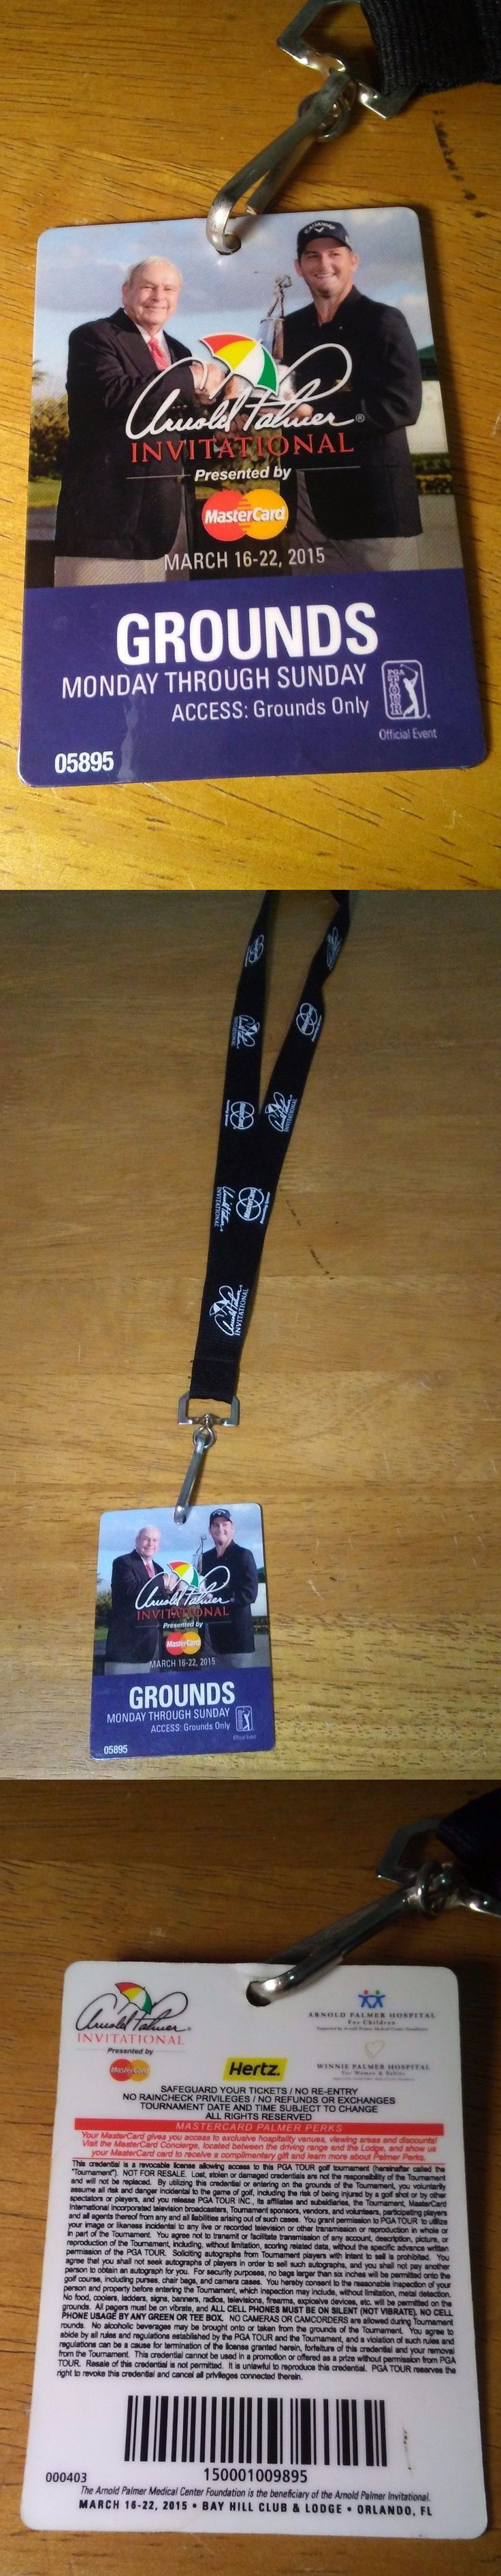 Golf 428: 2015 Arnold Palmer Invitational Golf Bay Hill Grounds Weekly Badge With Lanyard -> BUY IT NOW ONLY: $78.99 on eBay!